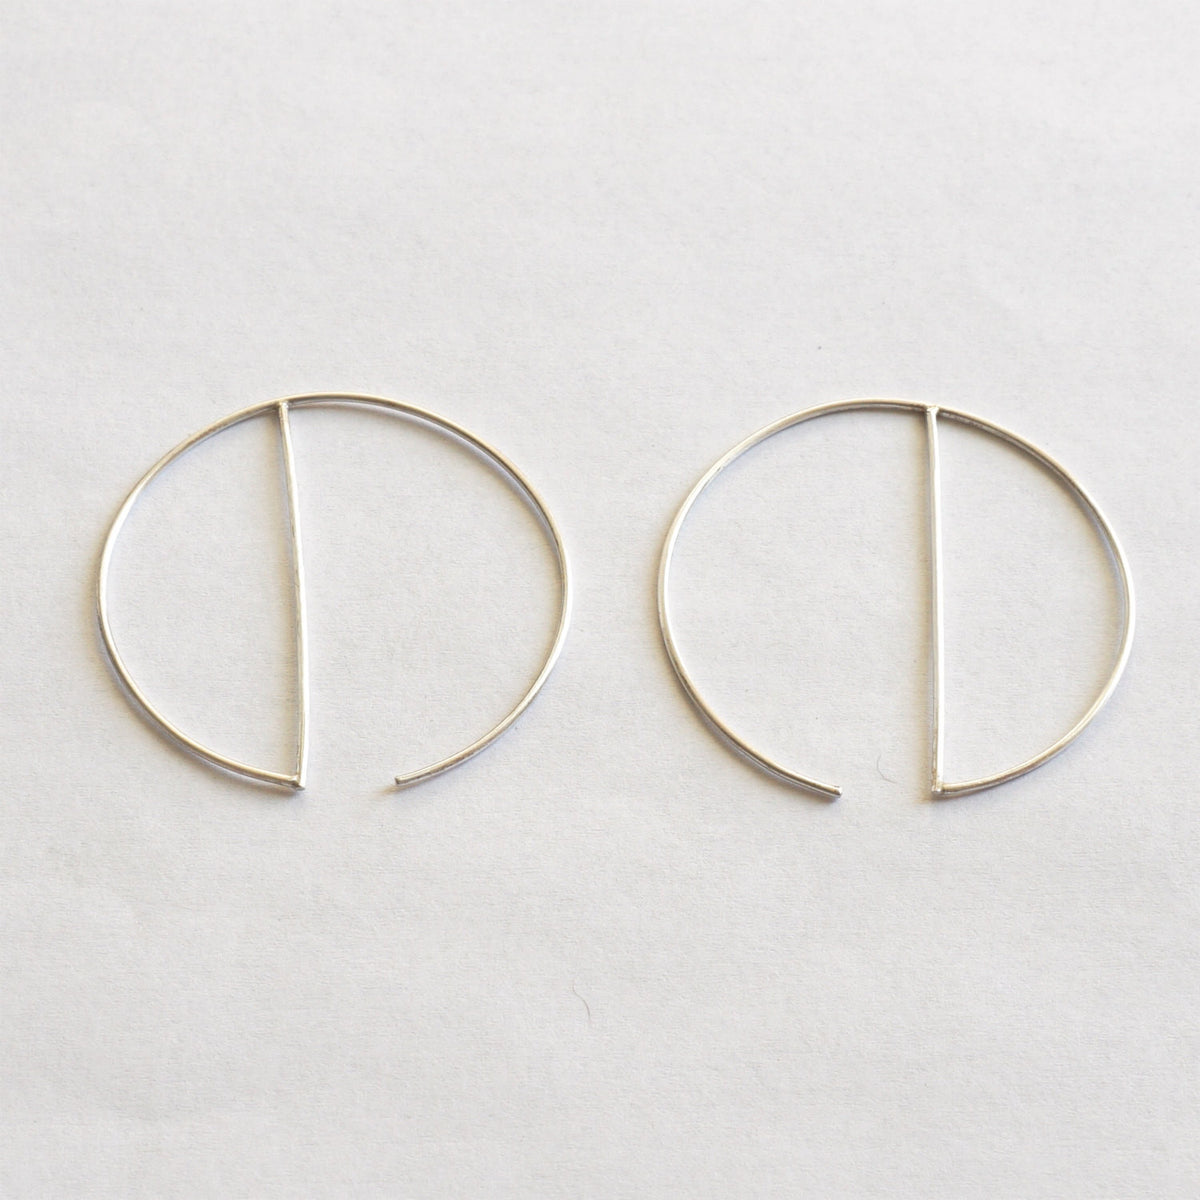 Contemporary Designed - Minimalist and Hand-Made, Open Hoop Dangle Earrings - 0259 - Virginia Wynne Designs